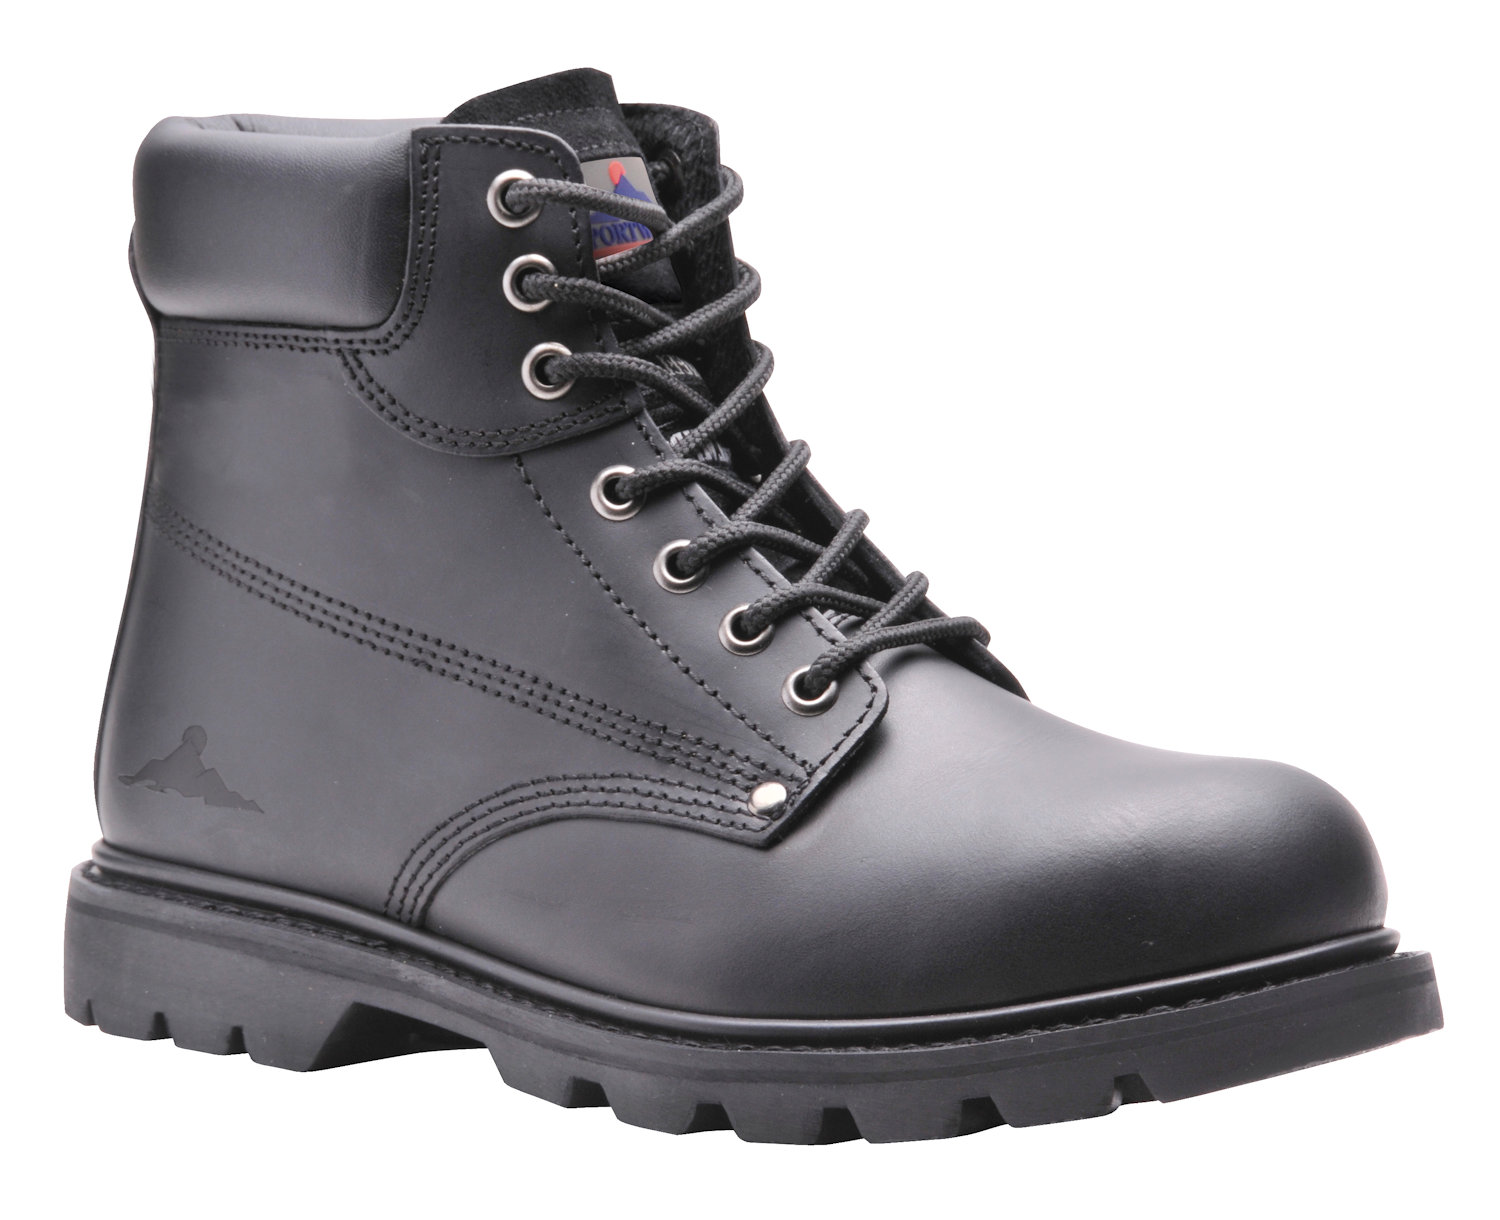 Portwest FW16 Steelite Safety Boot